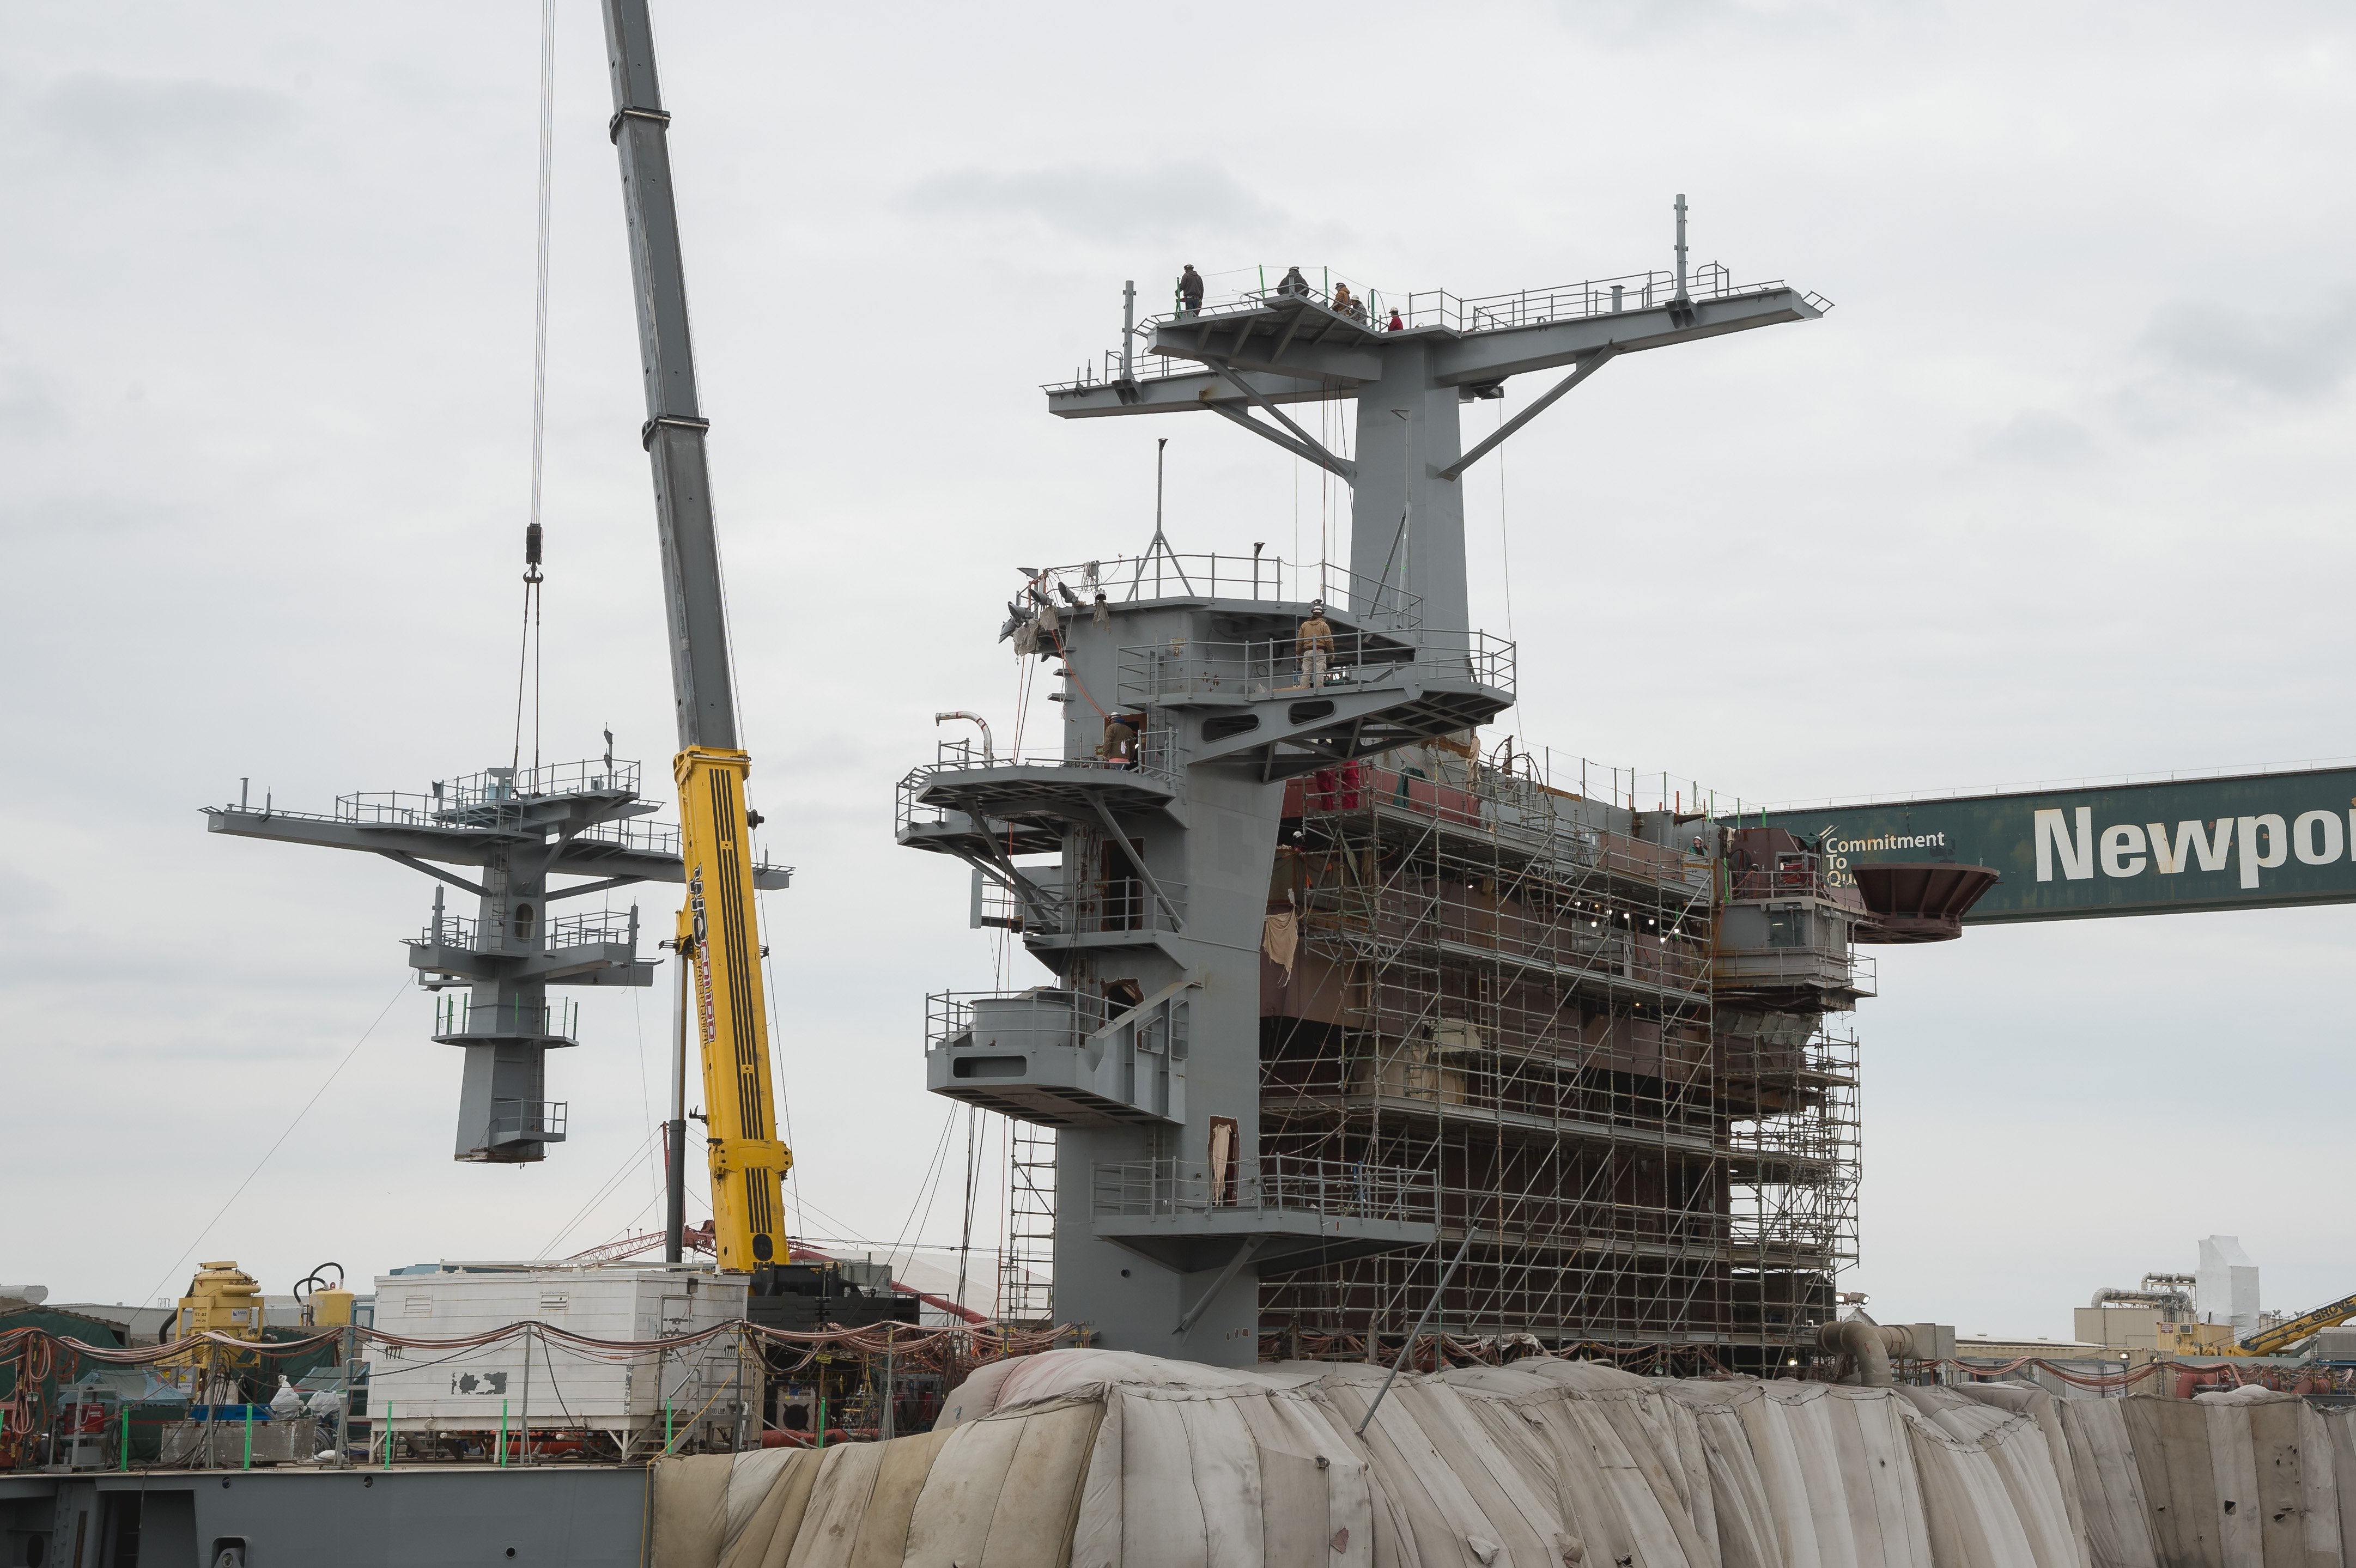 USS George Washington More Than Halfway Through RCOH, Will Leave Dry Dock Next Month - USNI News